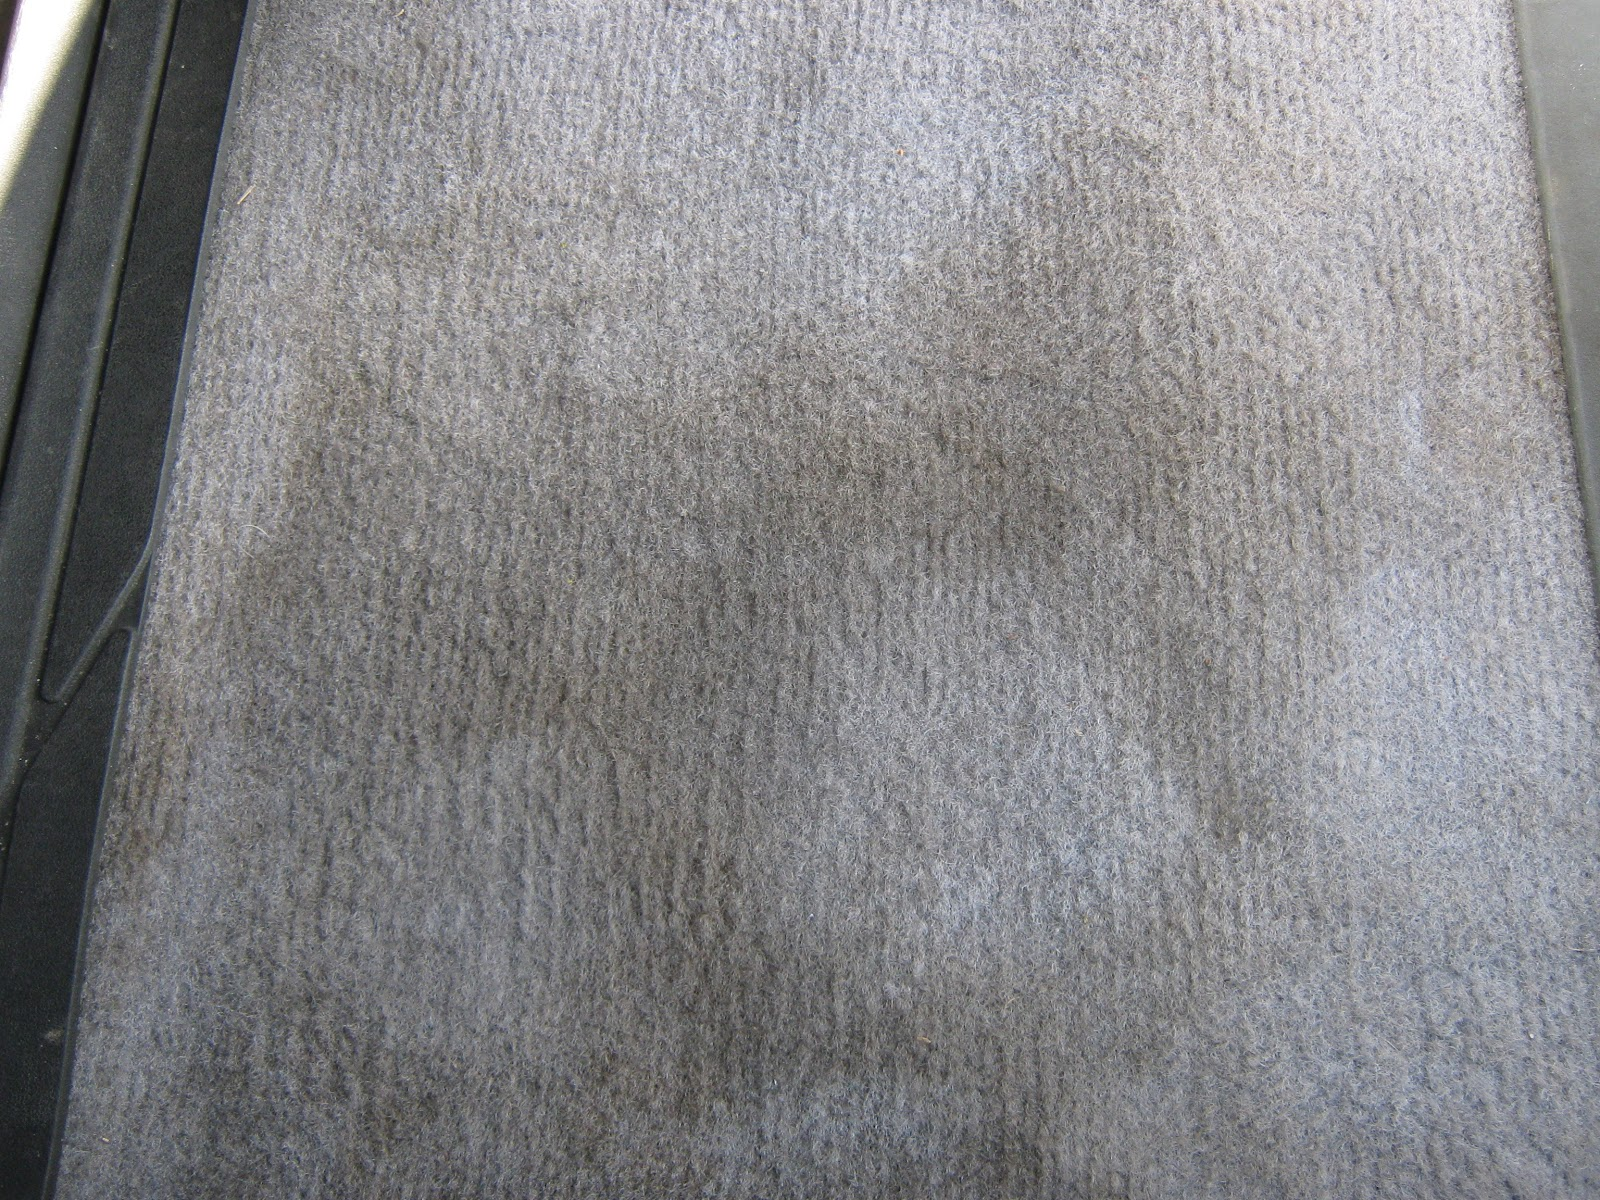 The Humdrum Hero: Borax for Dingy Carpet Stains